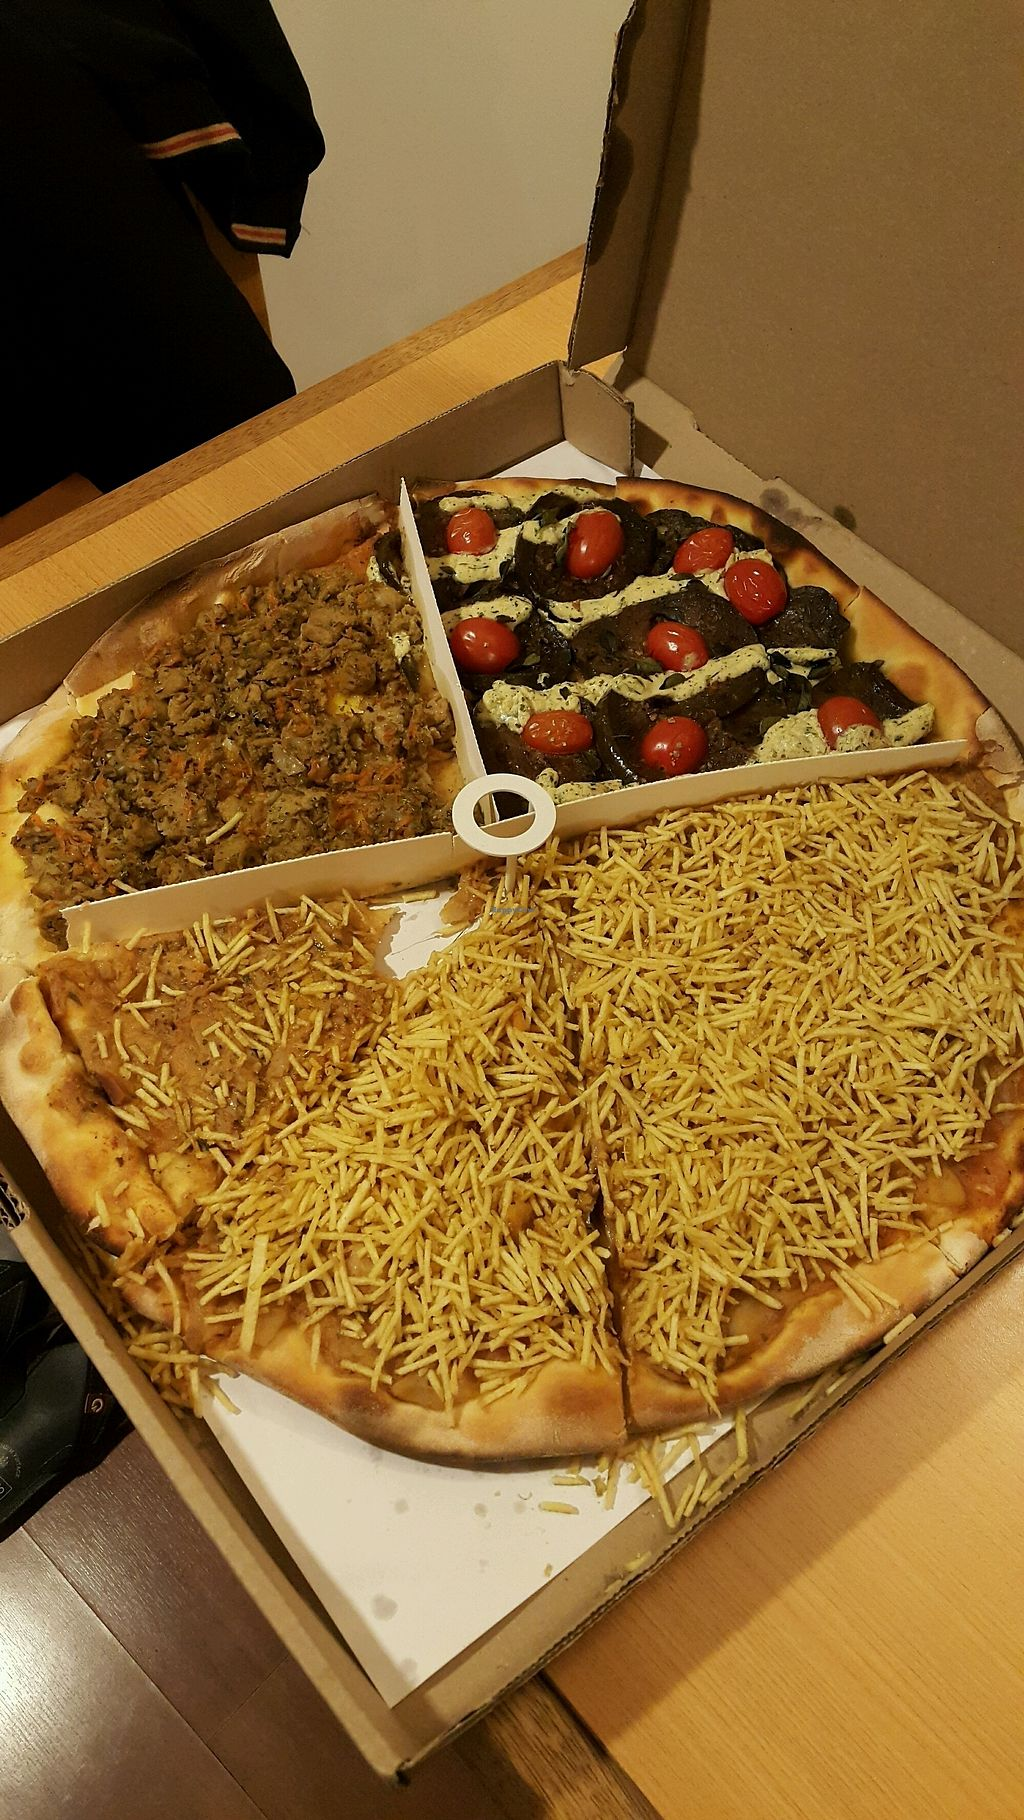 """Photo of Opte Pizzas  by <a href=""""/members/profile/andreialemos1"""">andreialemos1</a> <br/>Pizza <br/> March 29, 2018  - <a href='/contact/abuse/image/91871/378021'>Report</a>"""